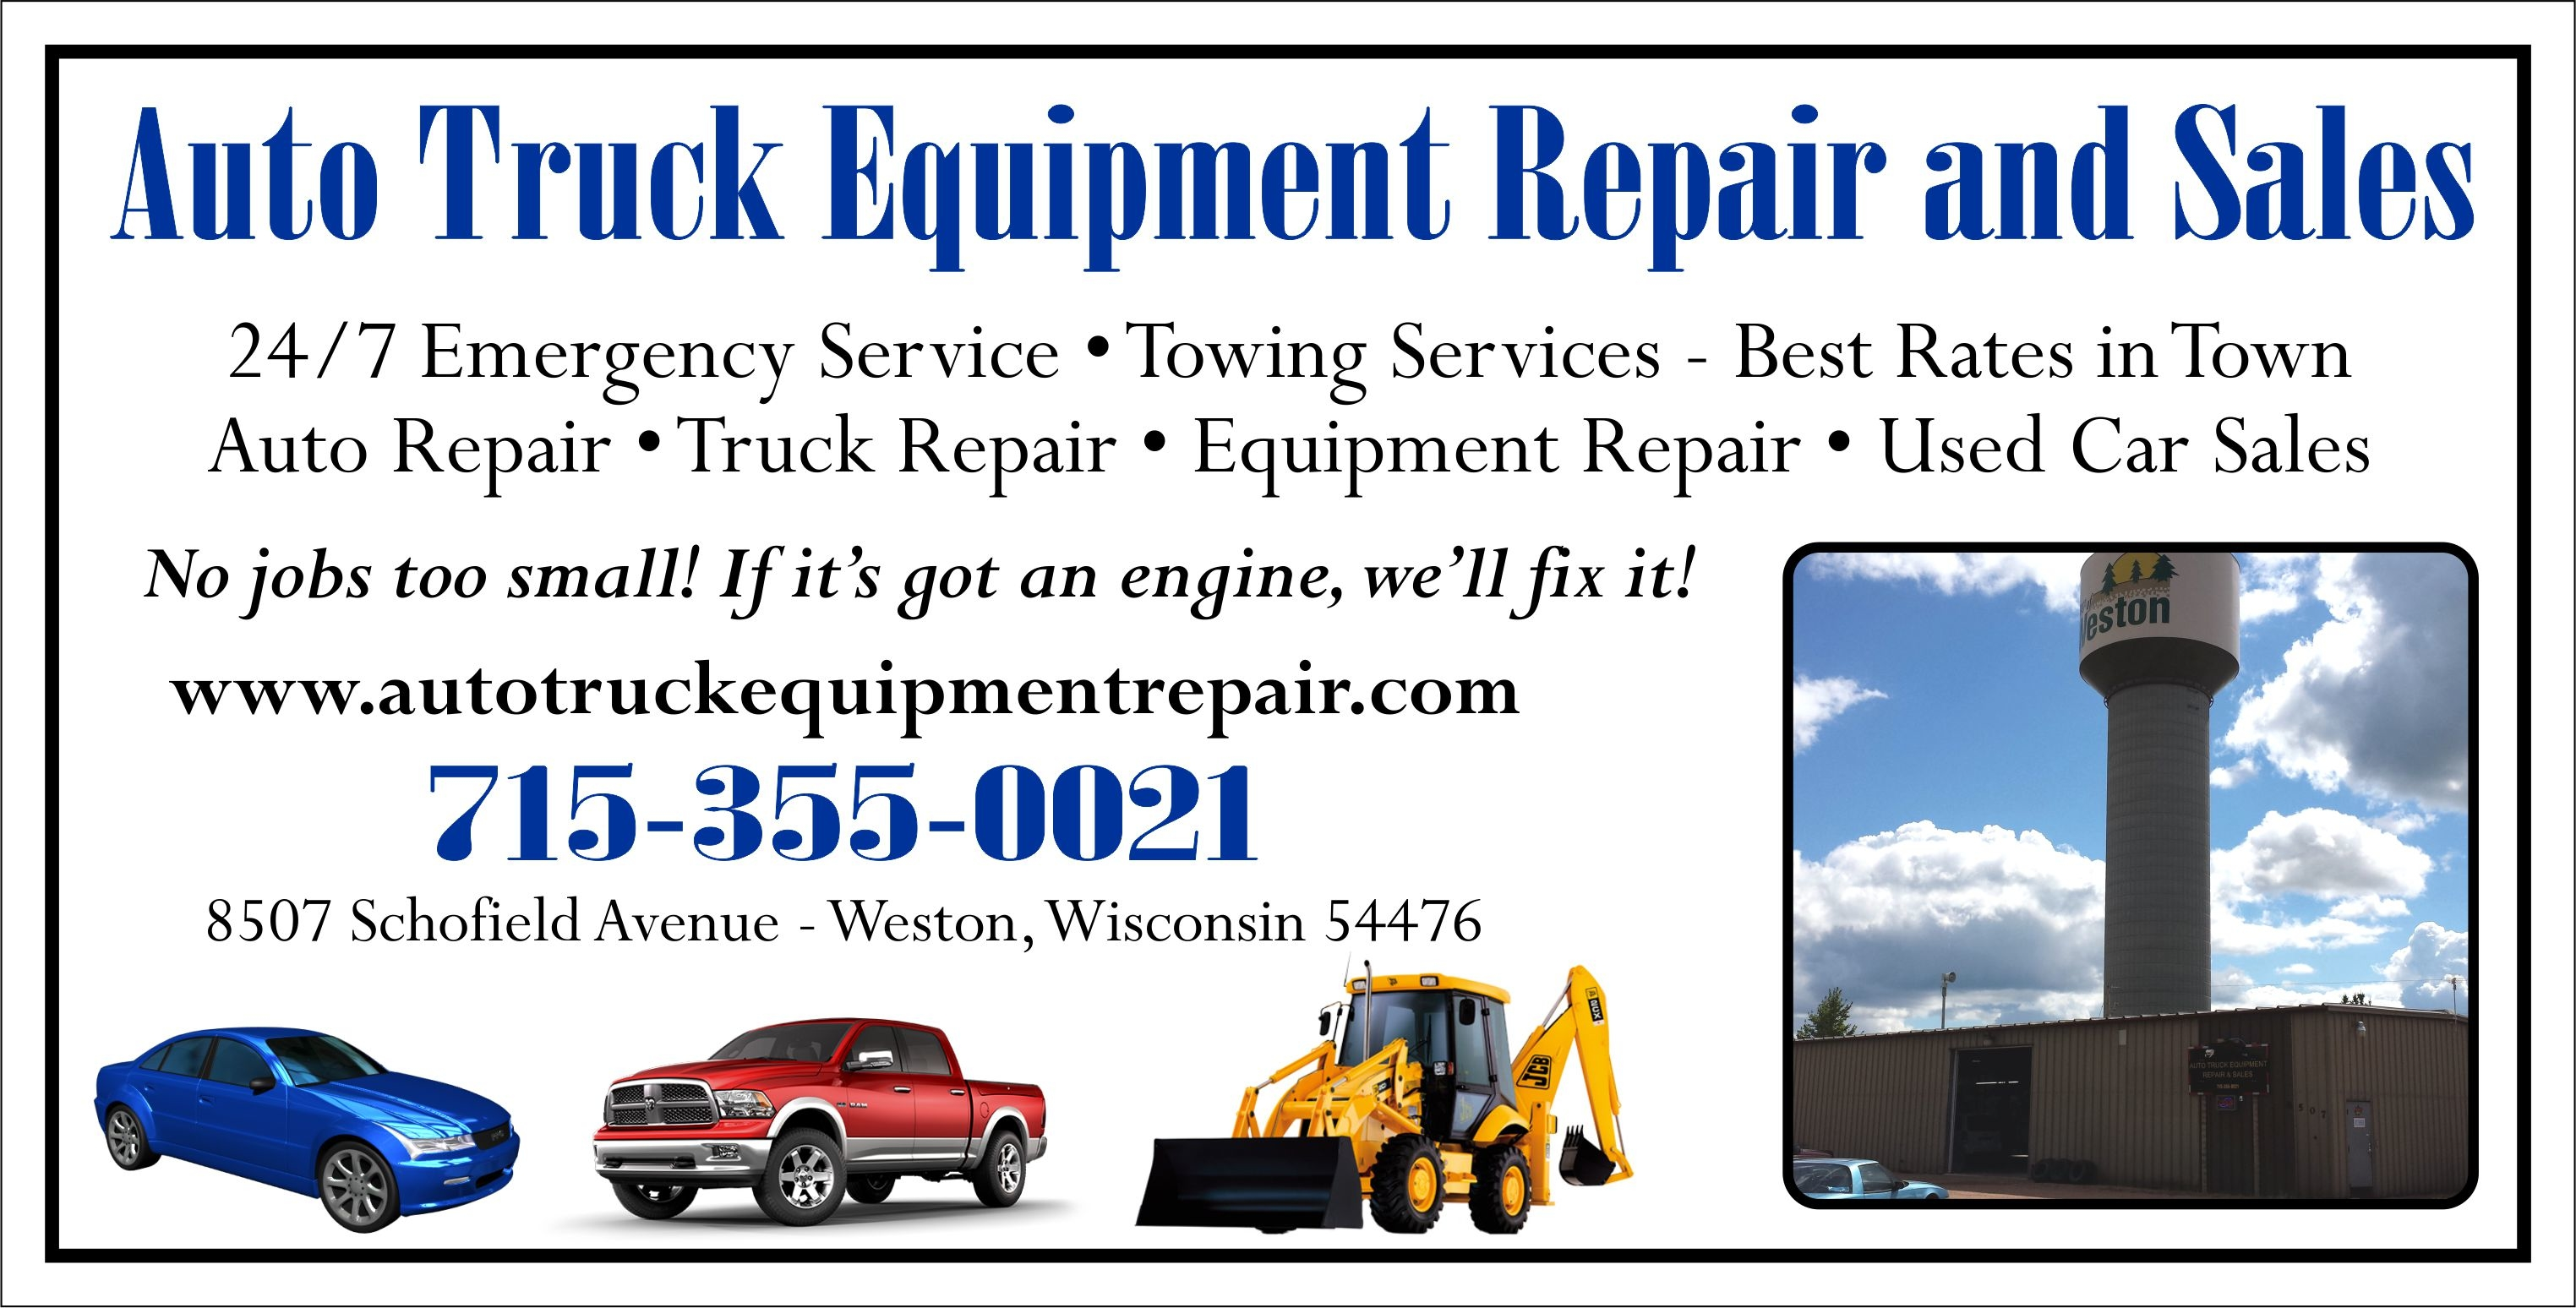 Auto Truck Equipment Repair and Sales image 1